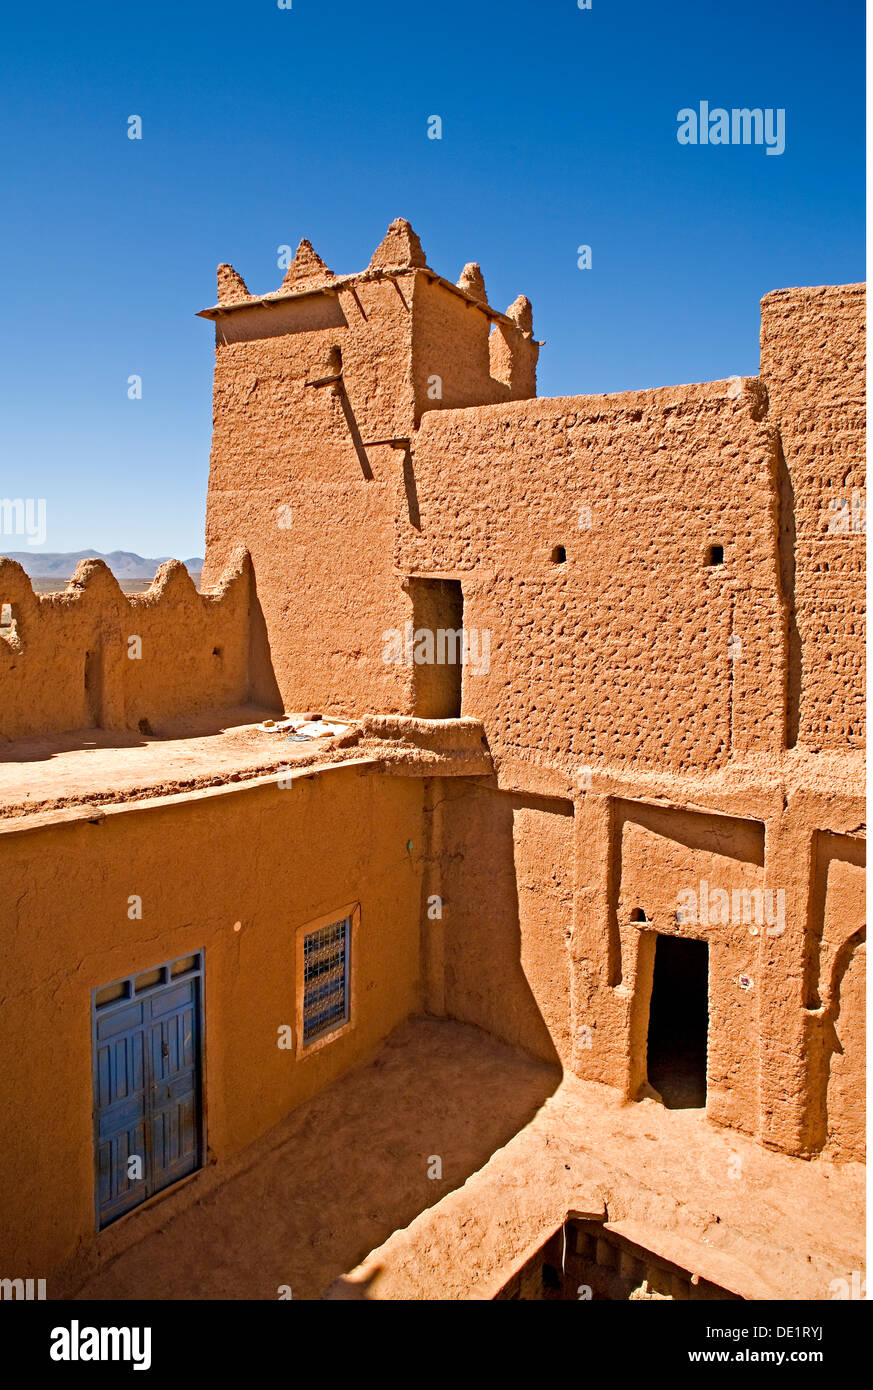 geography / travel, Morocco, settlement of the Berbers, Tighremt, Additional-Rights-Clearance-Info-Not-Available - Stock Image